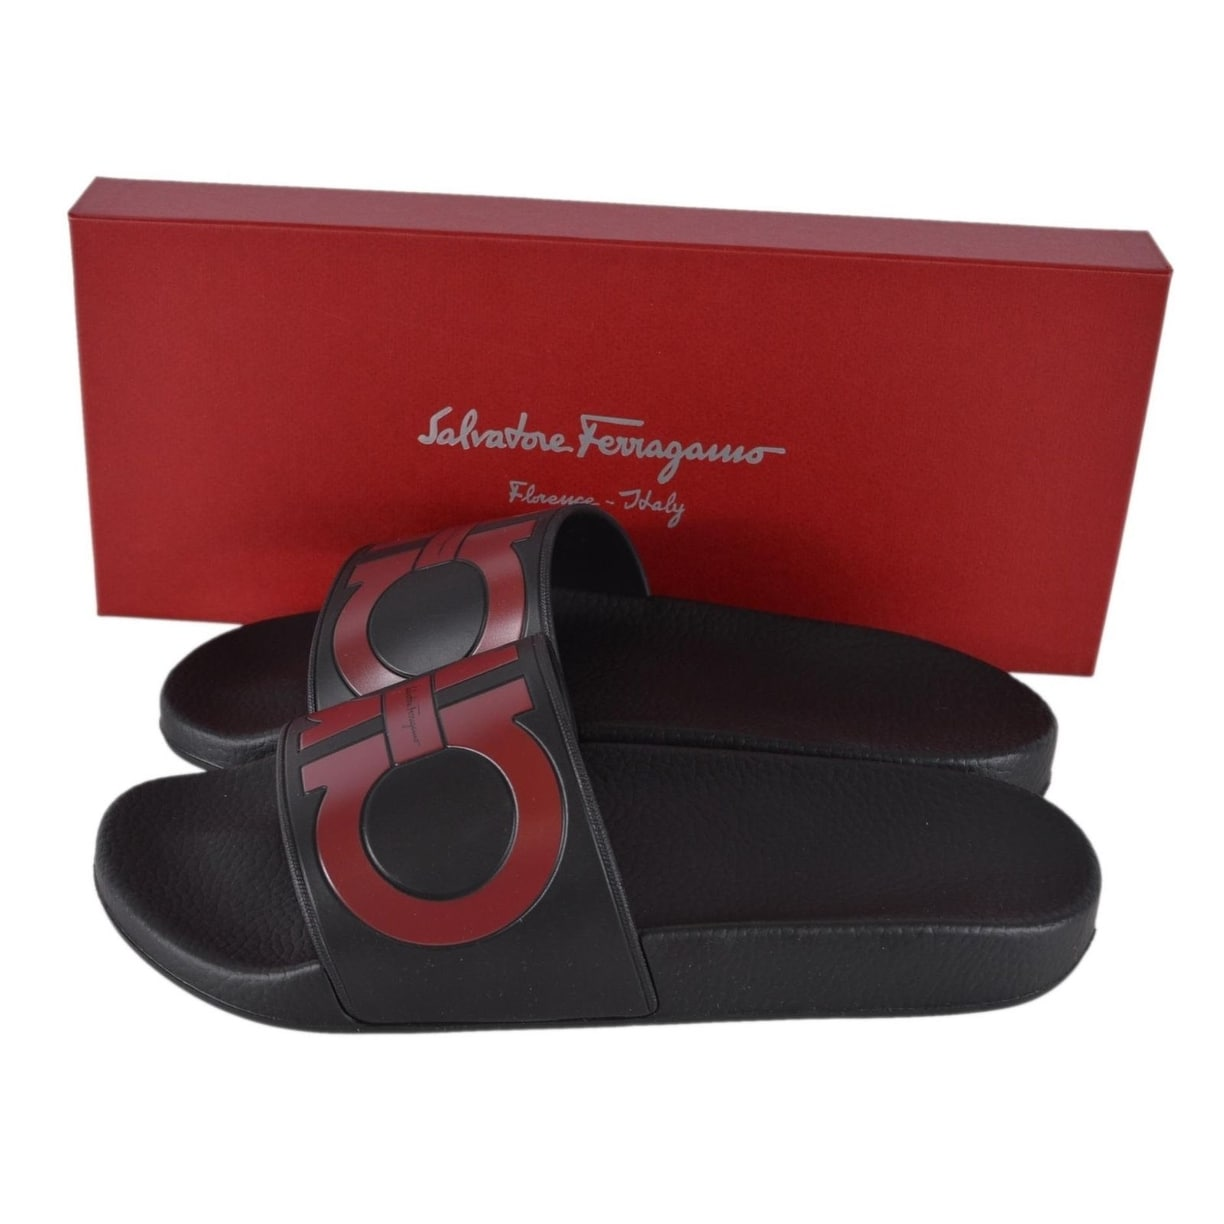 c1086ef02 Shop Salvatore Ferragamo Men s GROOVE Gancini Logo Slides Sandals Shoes -  On Sale - Free Shipping Today - Overstock - 25458968